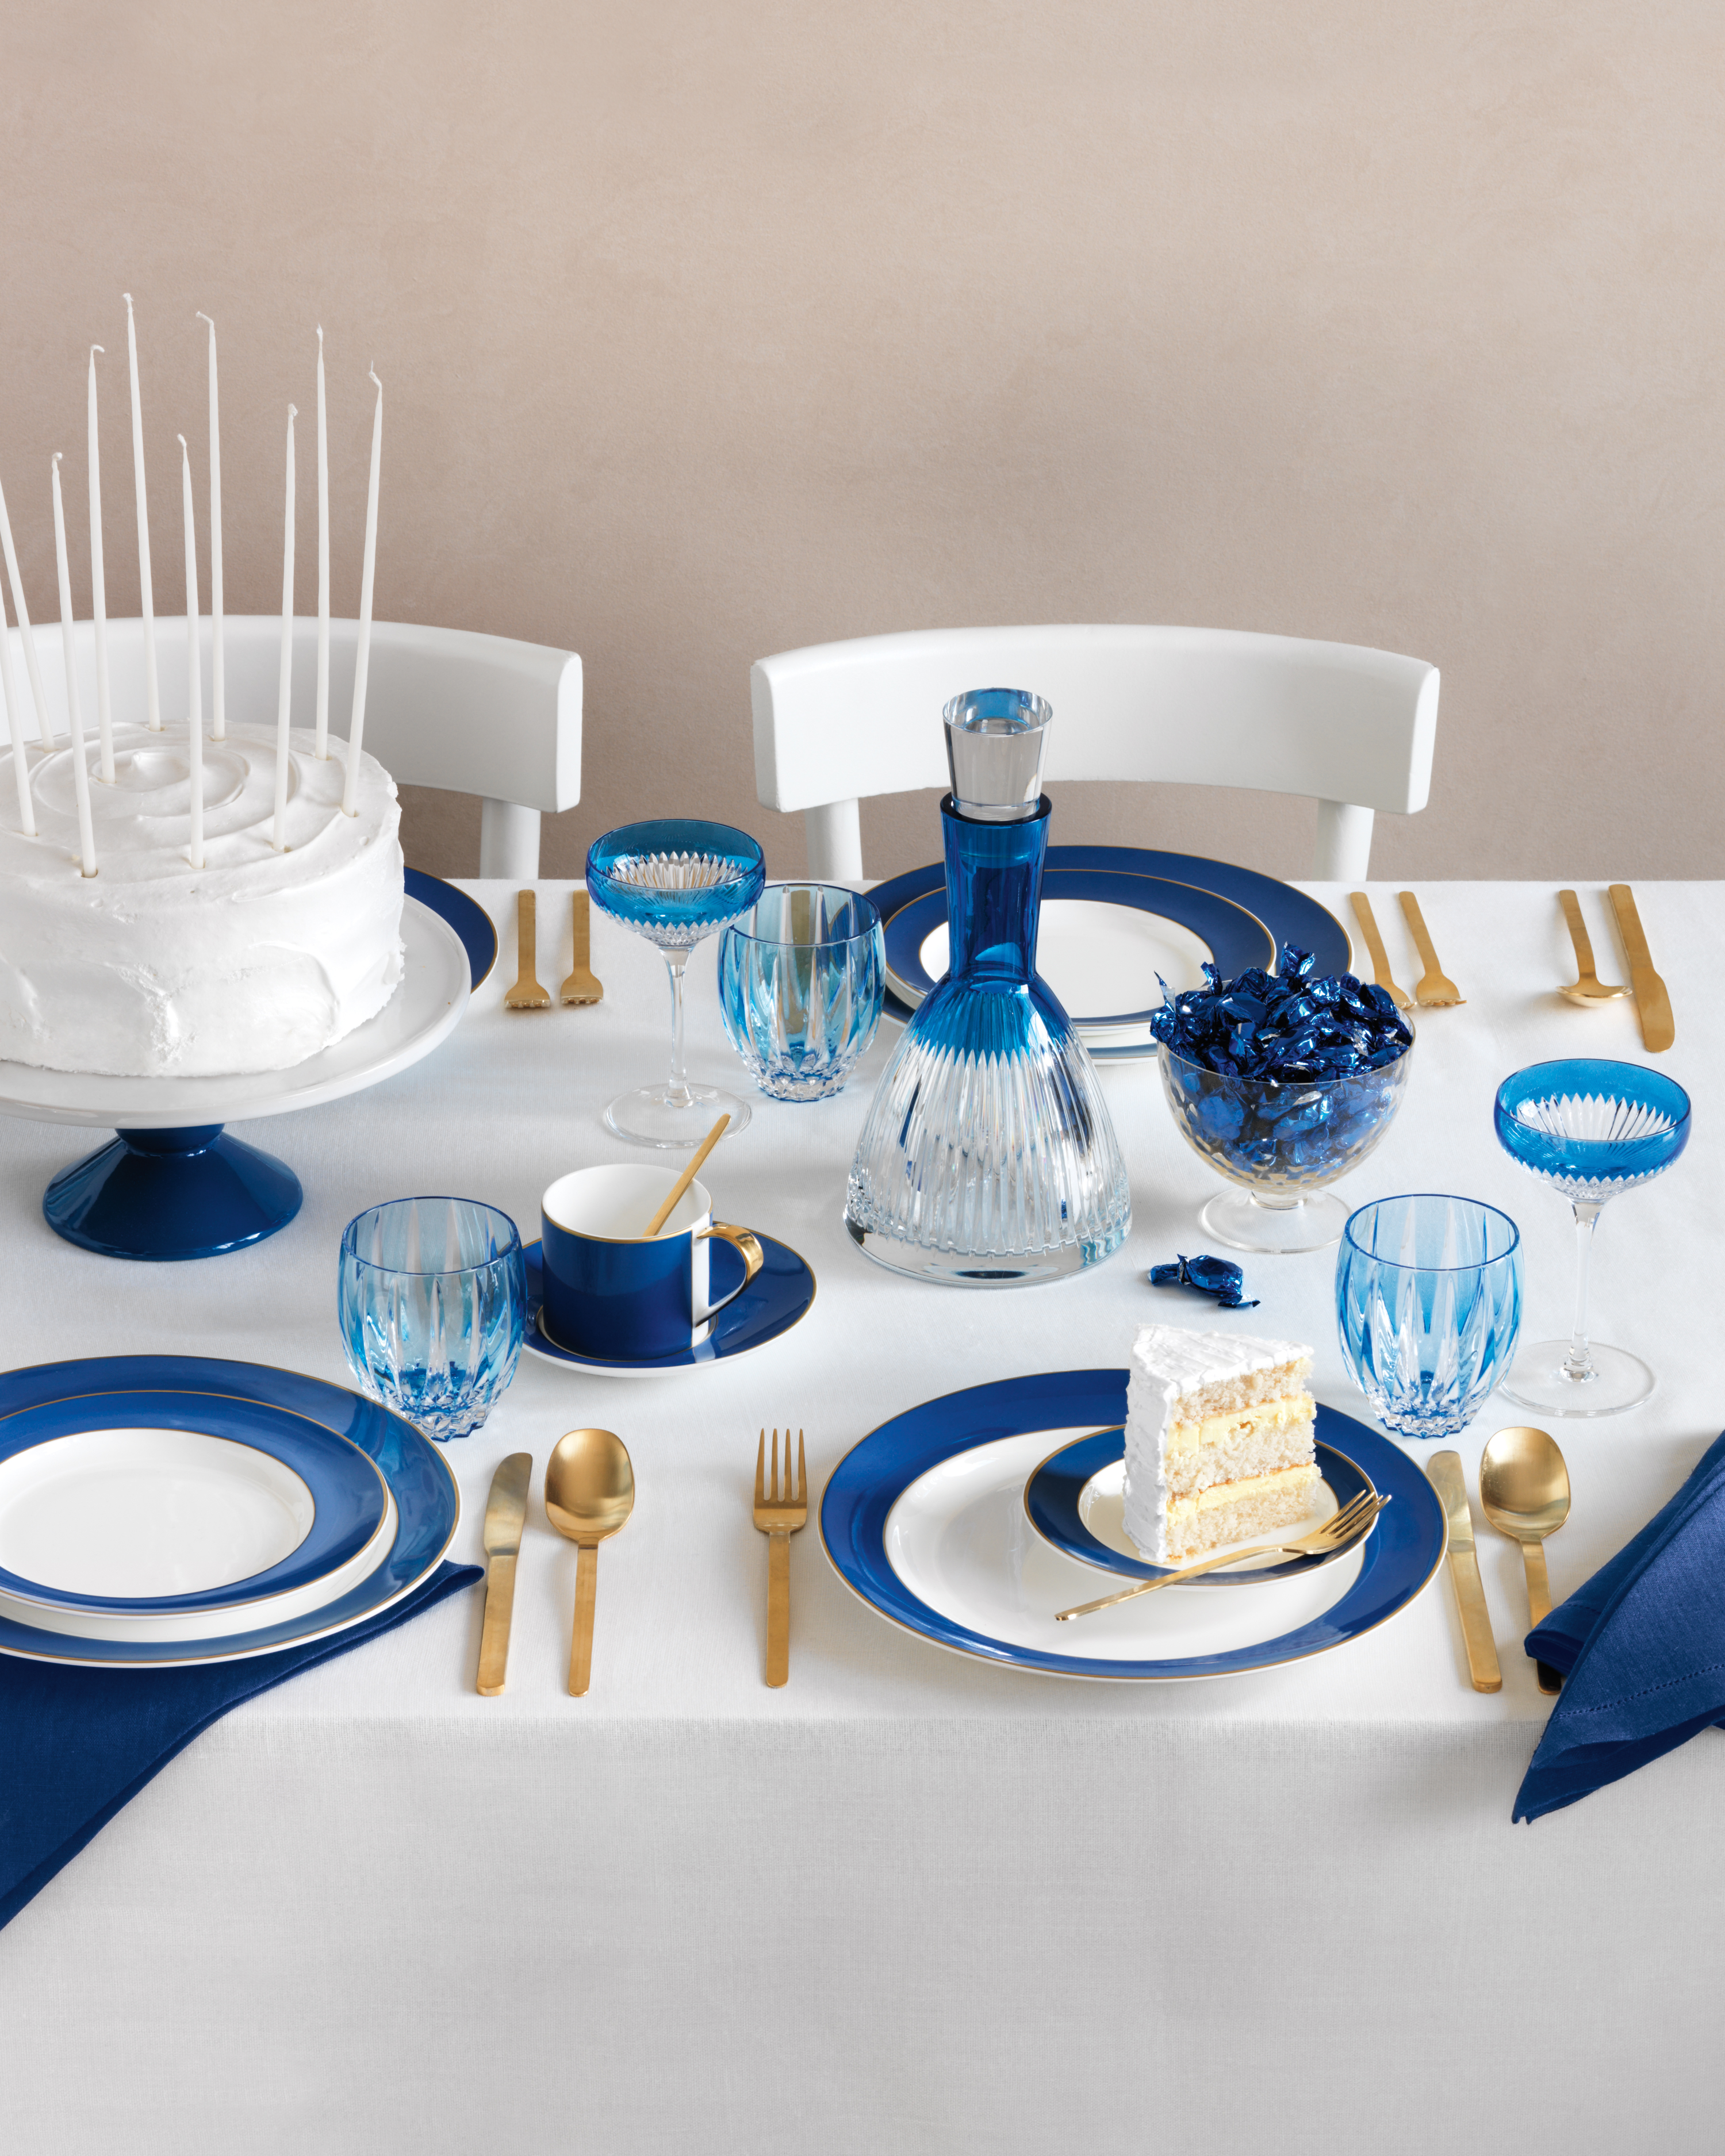 Cool and Chic Table Settings